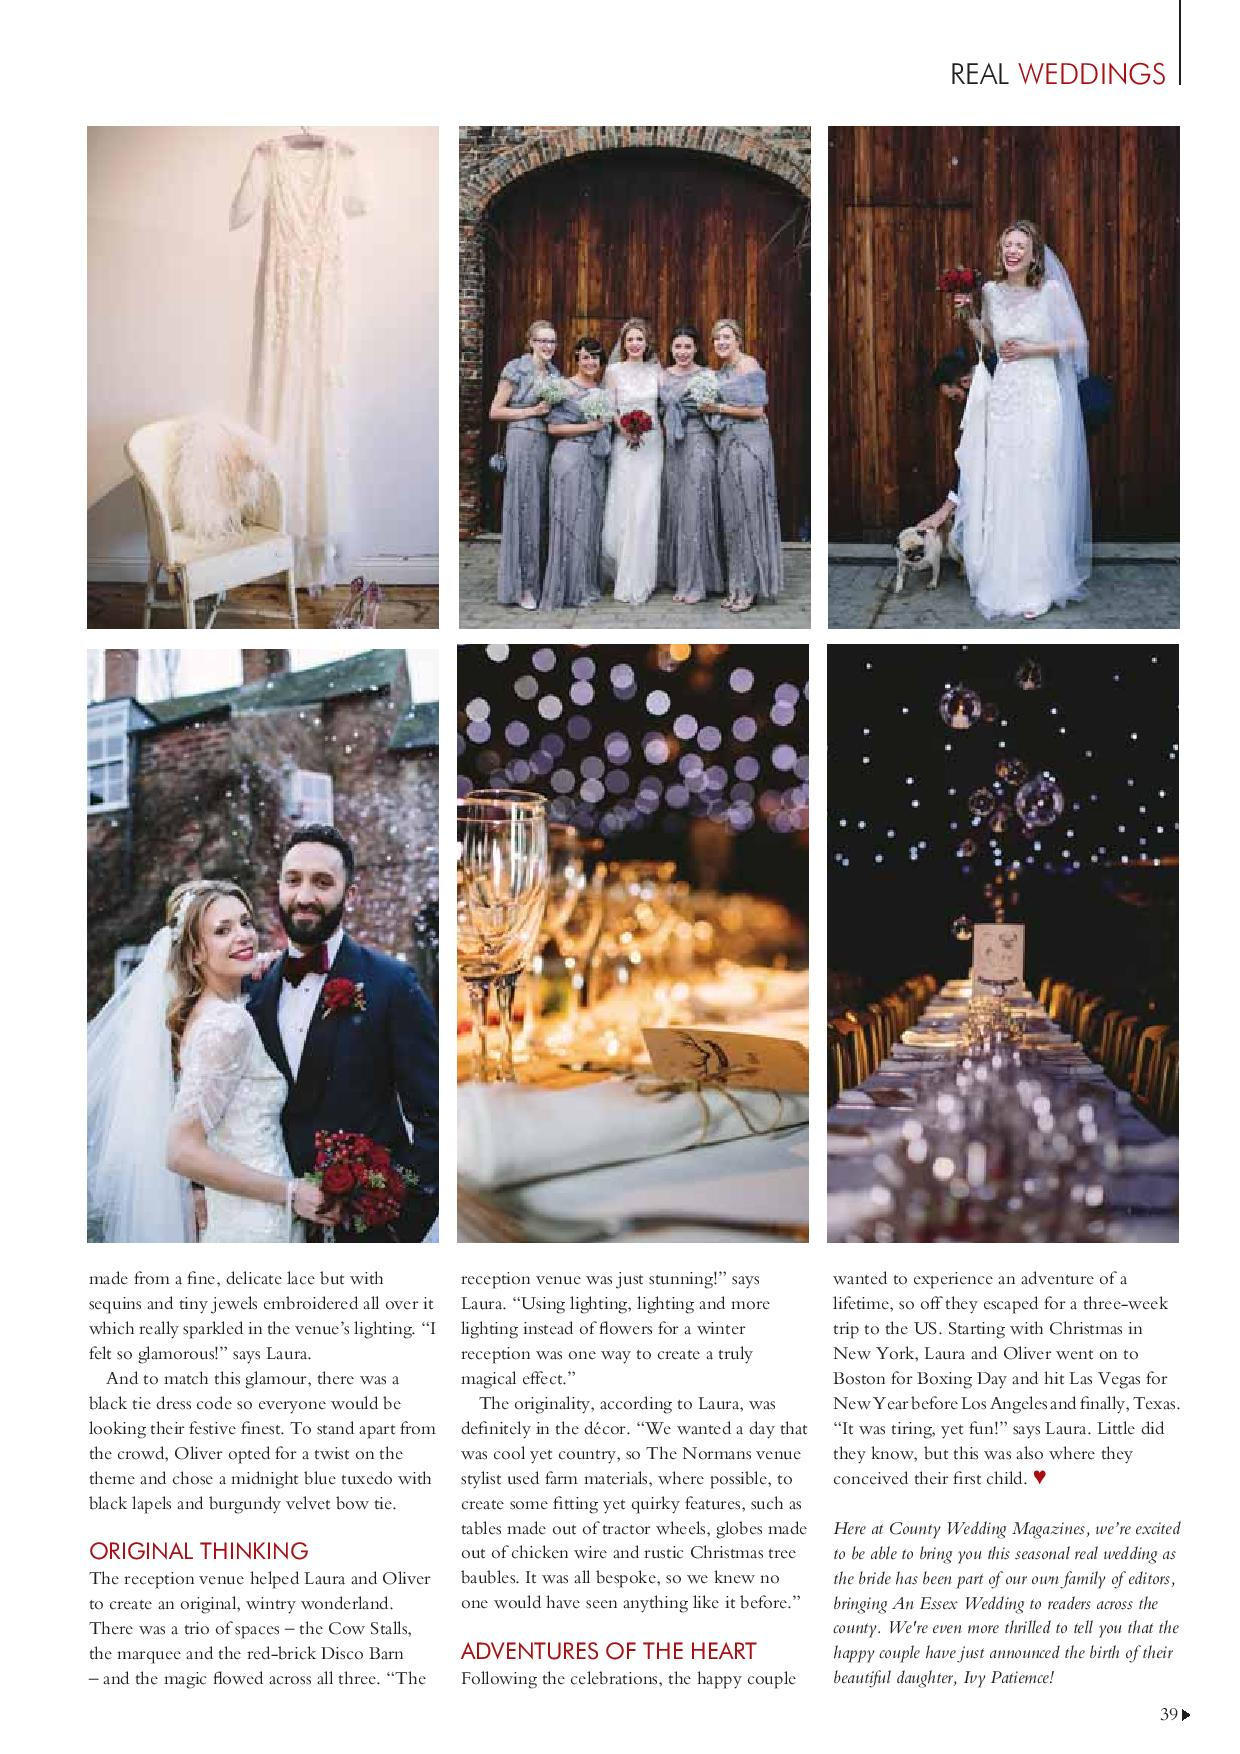 The Normans Weddings in Your Yorkshire Wedding magazine 4.jpg